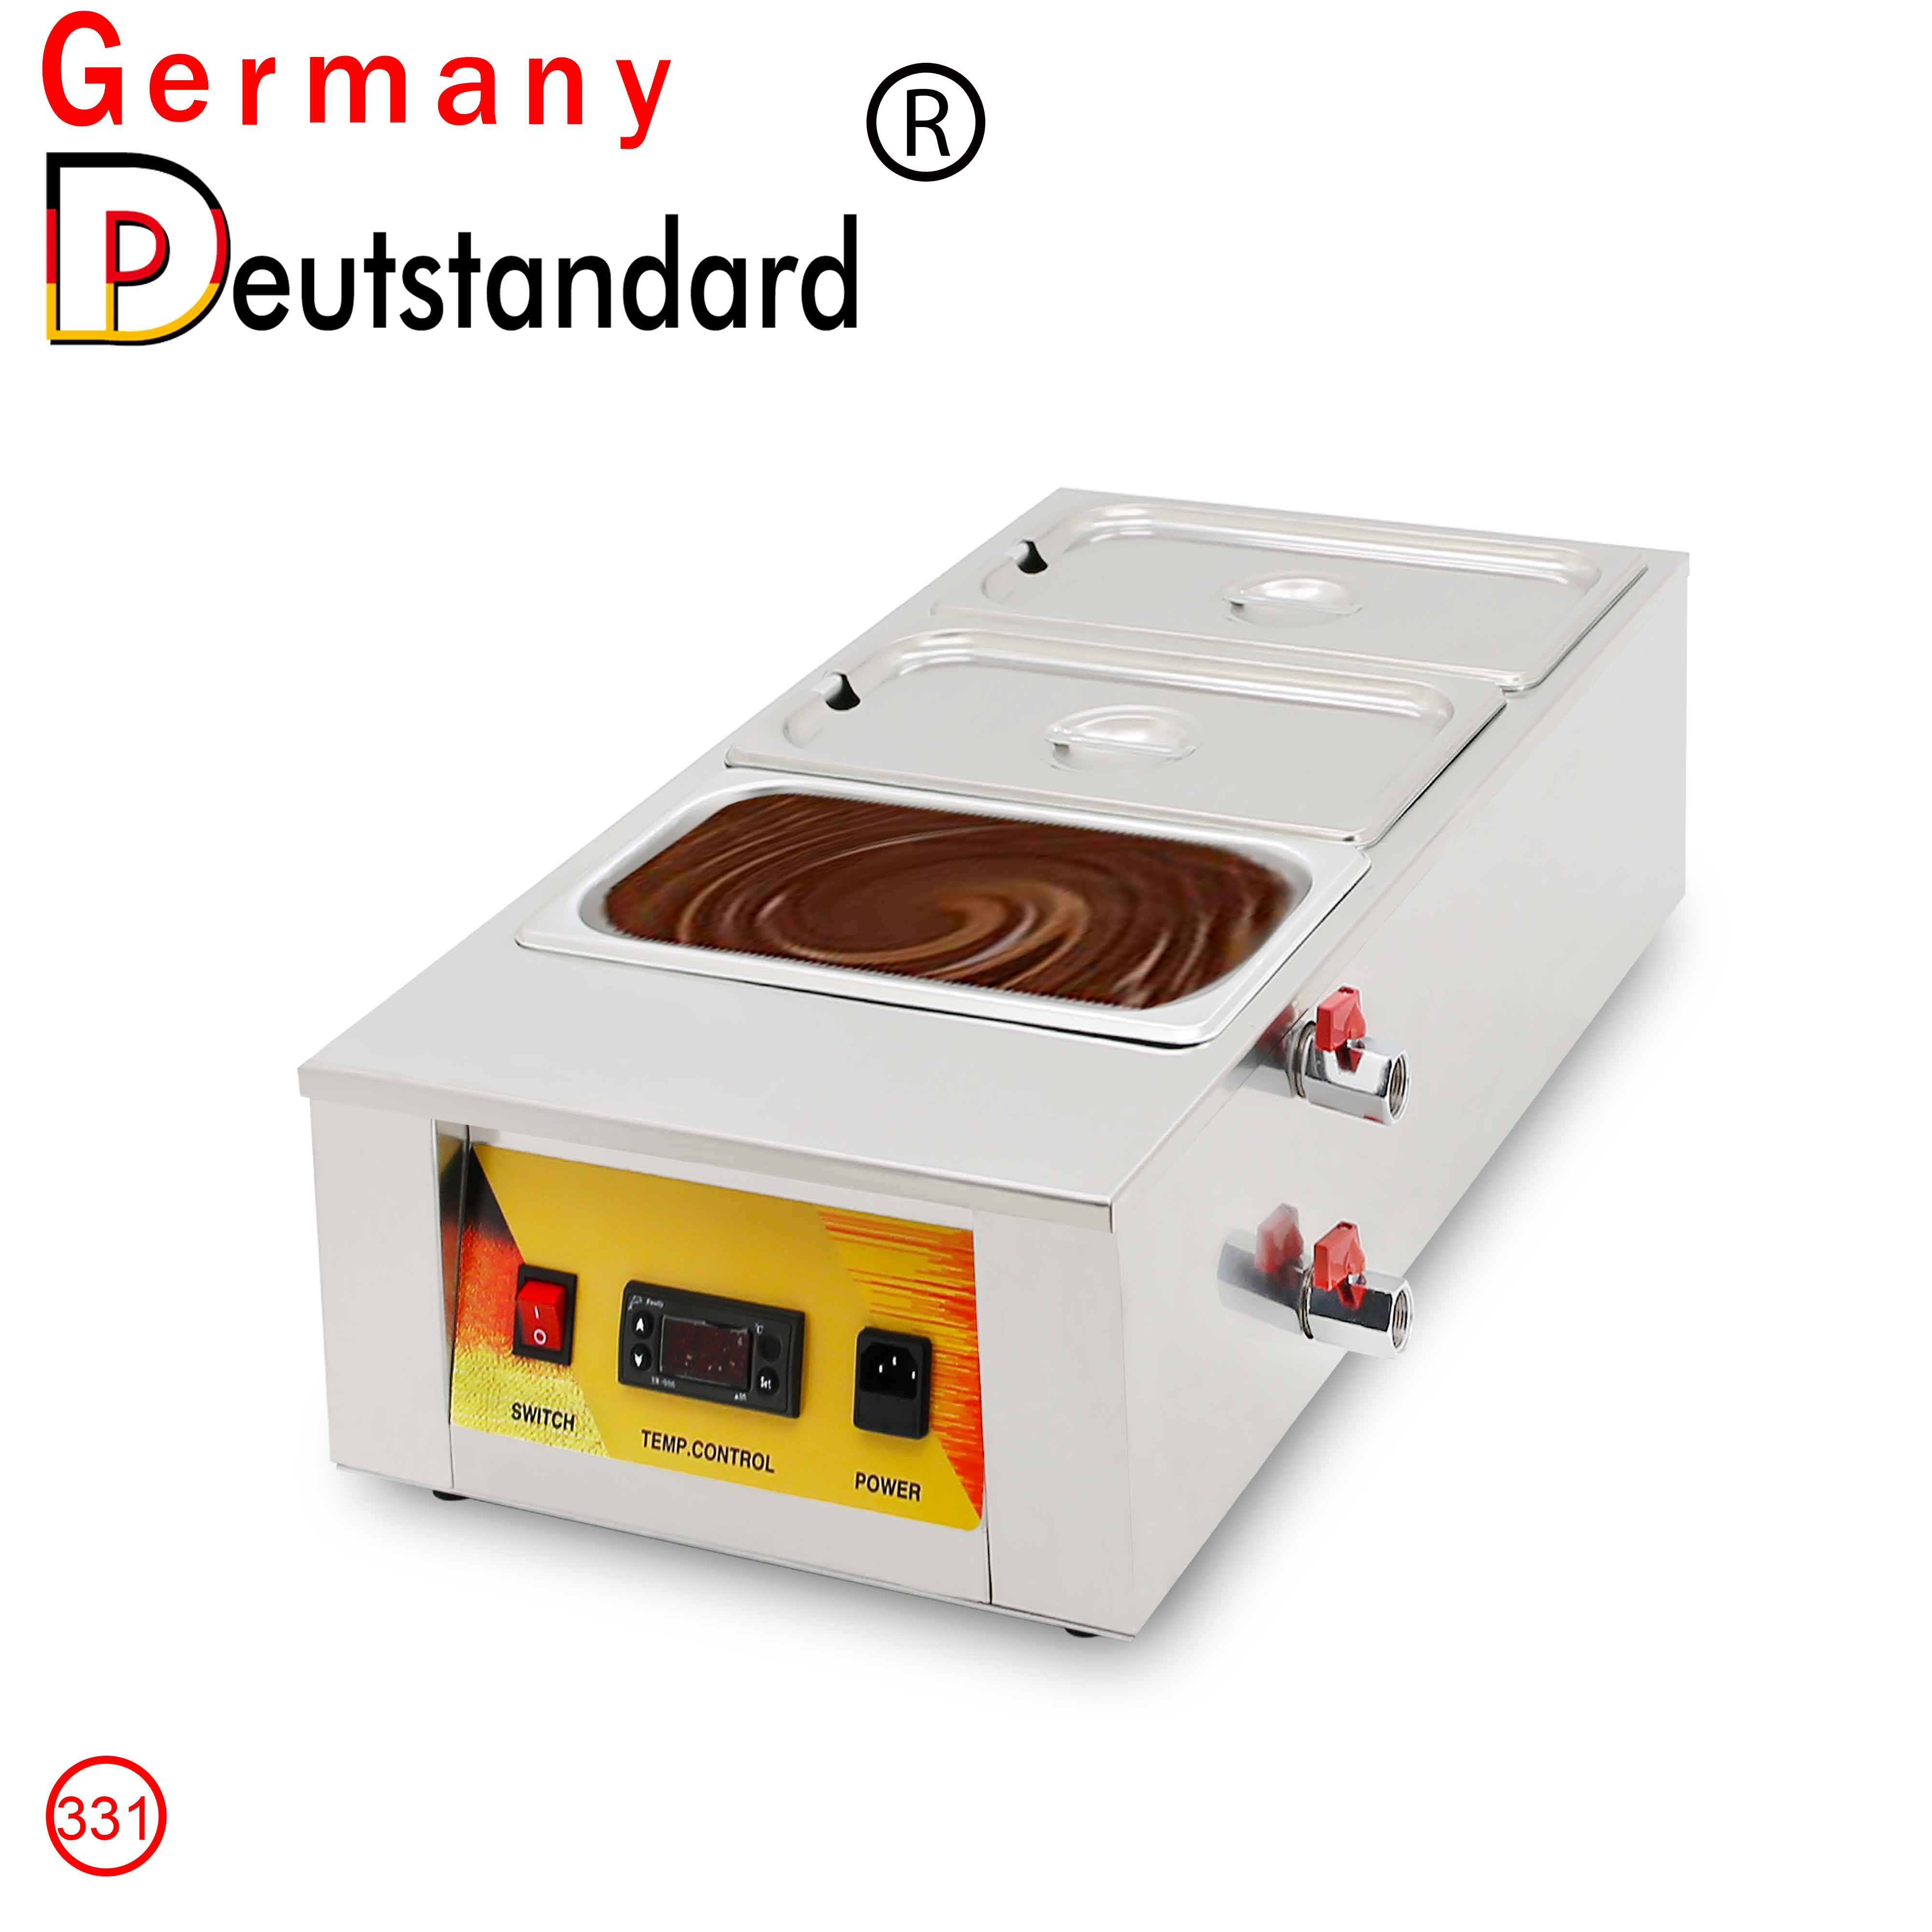 Commercial Chocolate Melting Machine Digital Display Panel With Three Cylinders Warmer Machine Chocolate Tempering Maker With CE hot sale popular 5l commercial spanish churro maker machine with 6l fryer maker churros making machine with ce in high quqlity